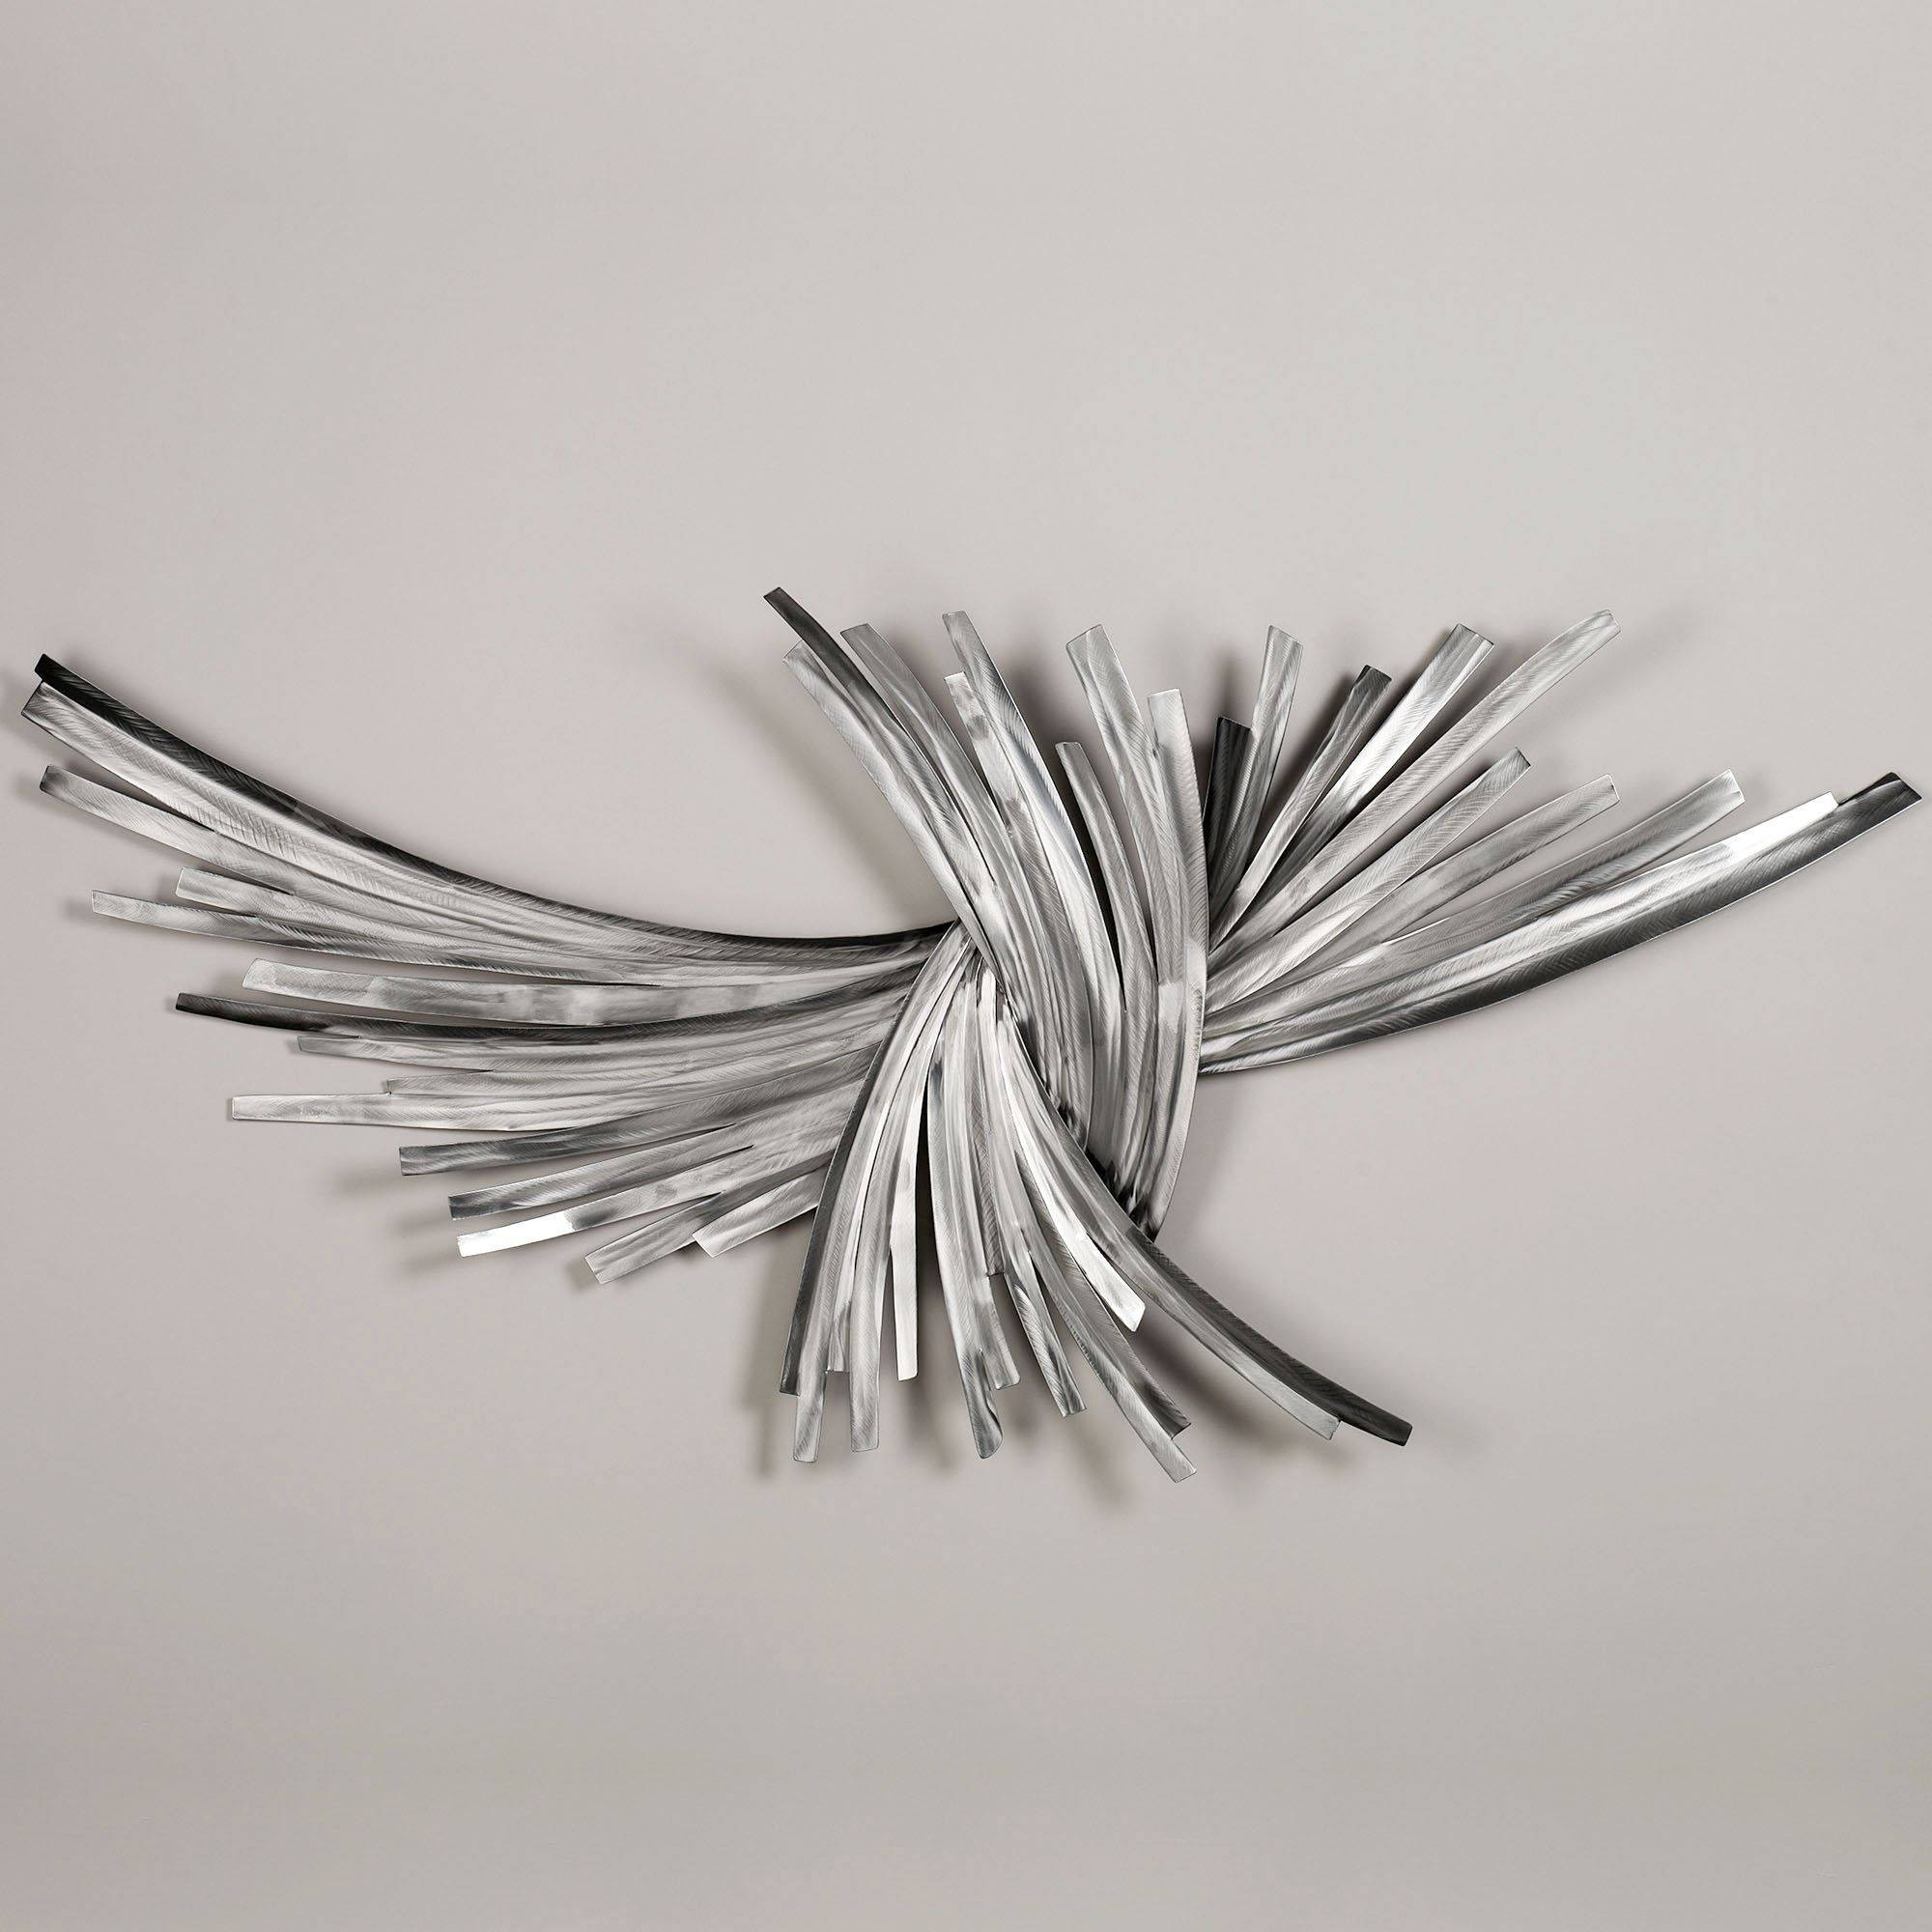 Startling Class Plus Infinity Silver Wall Sculpture Metal Wall Art With Regard To Most Recently Released Bronze Tree Wall Art (View 17 of 25)